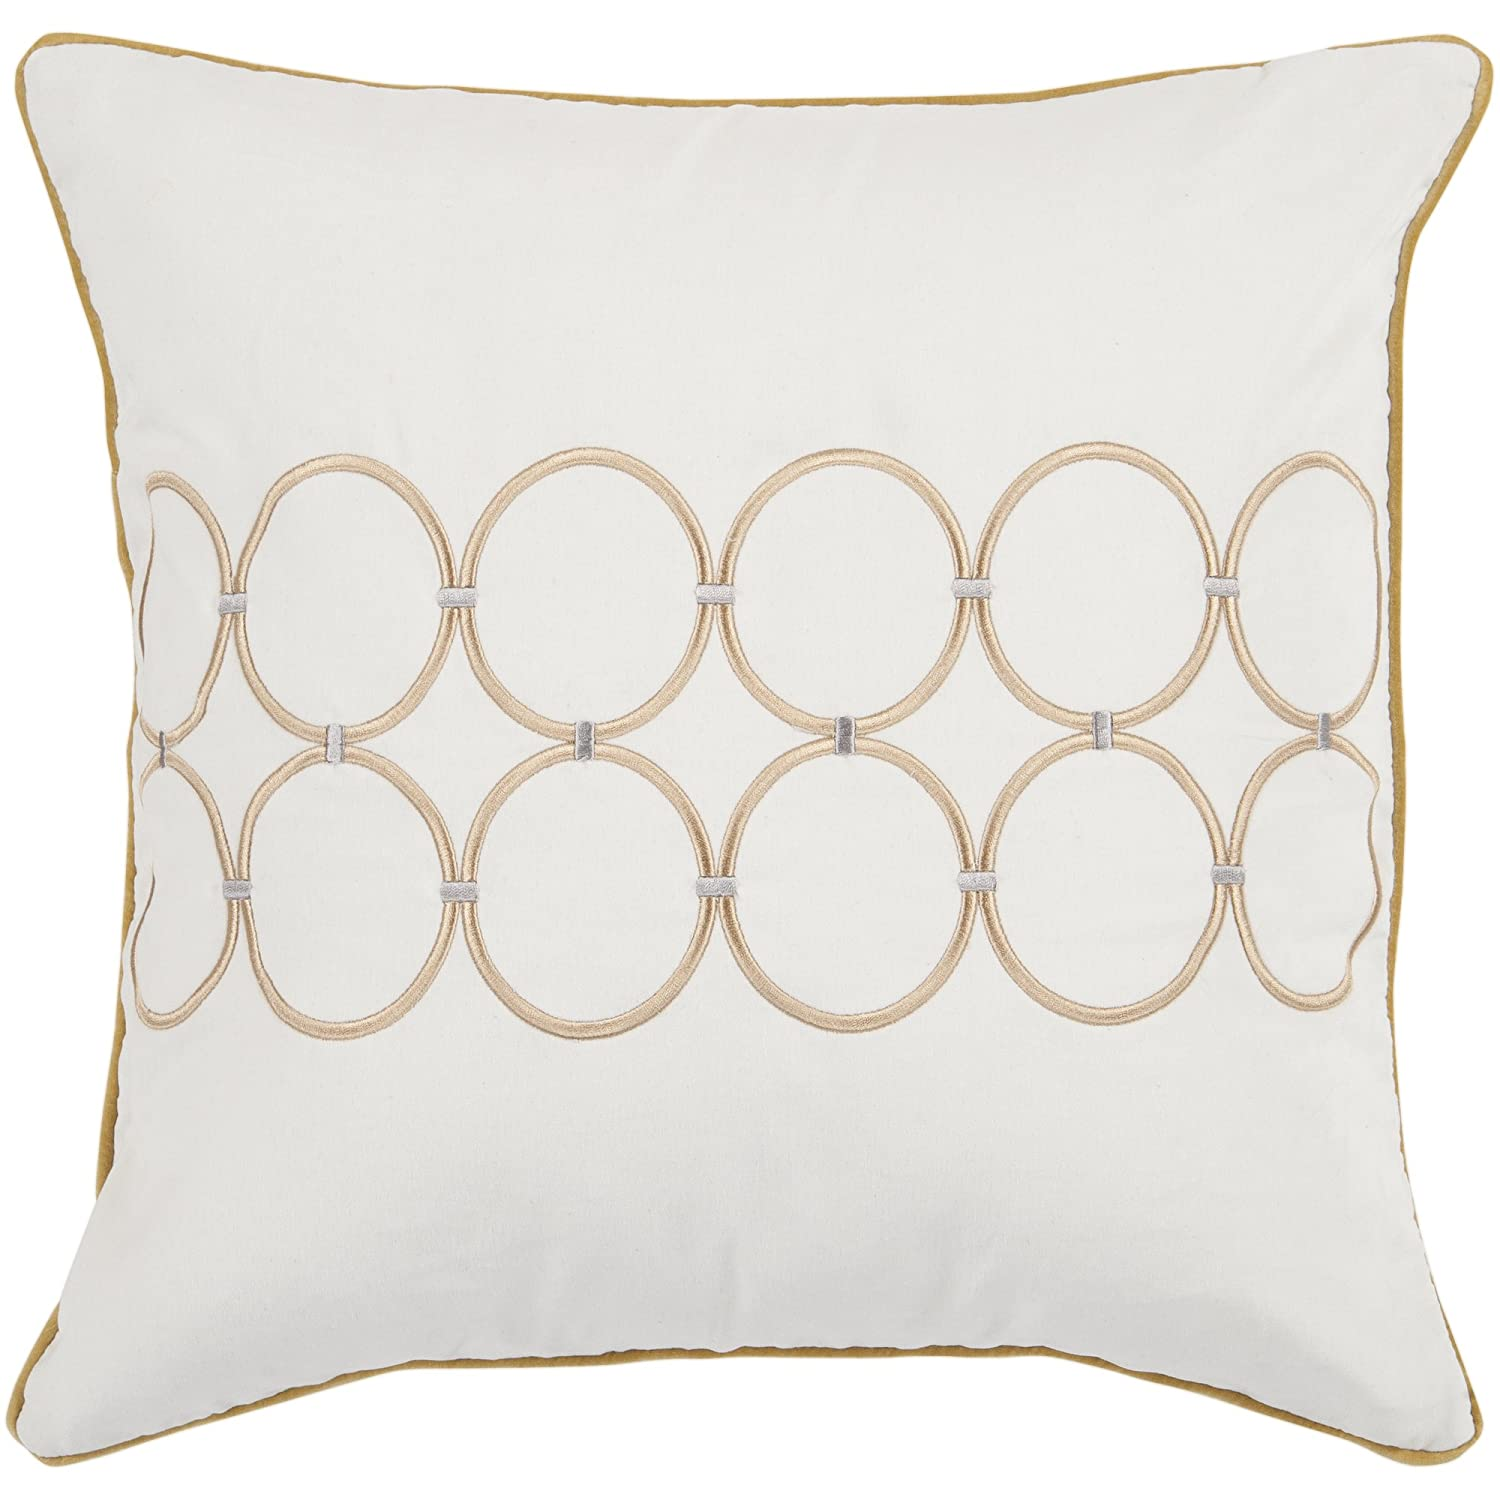 Surya Rug BCO510-1818P Square Ivory Poly Fiber Pillow 18 x 18 in.   B007TWN81K